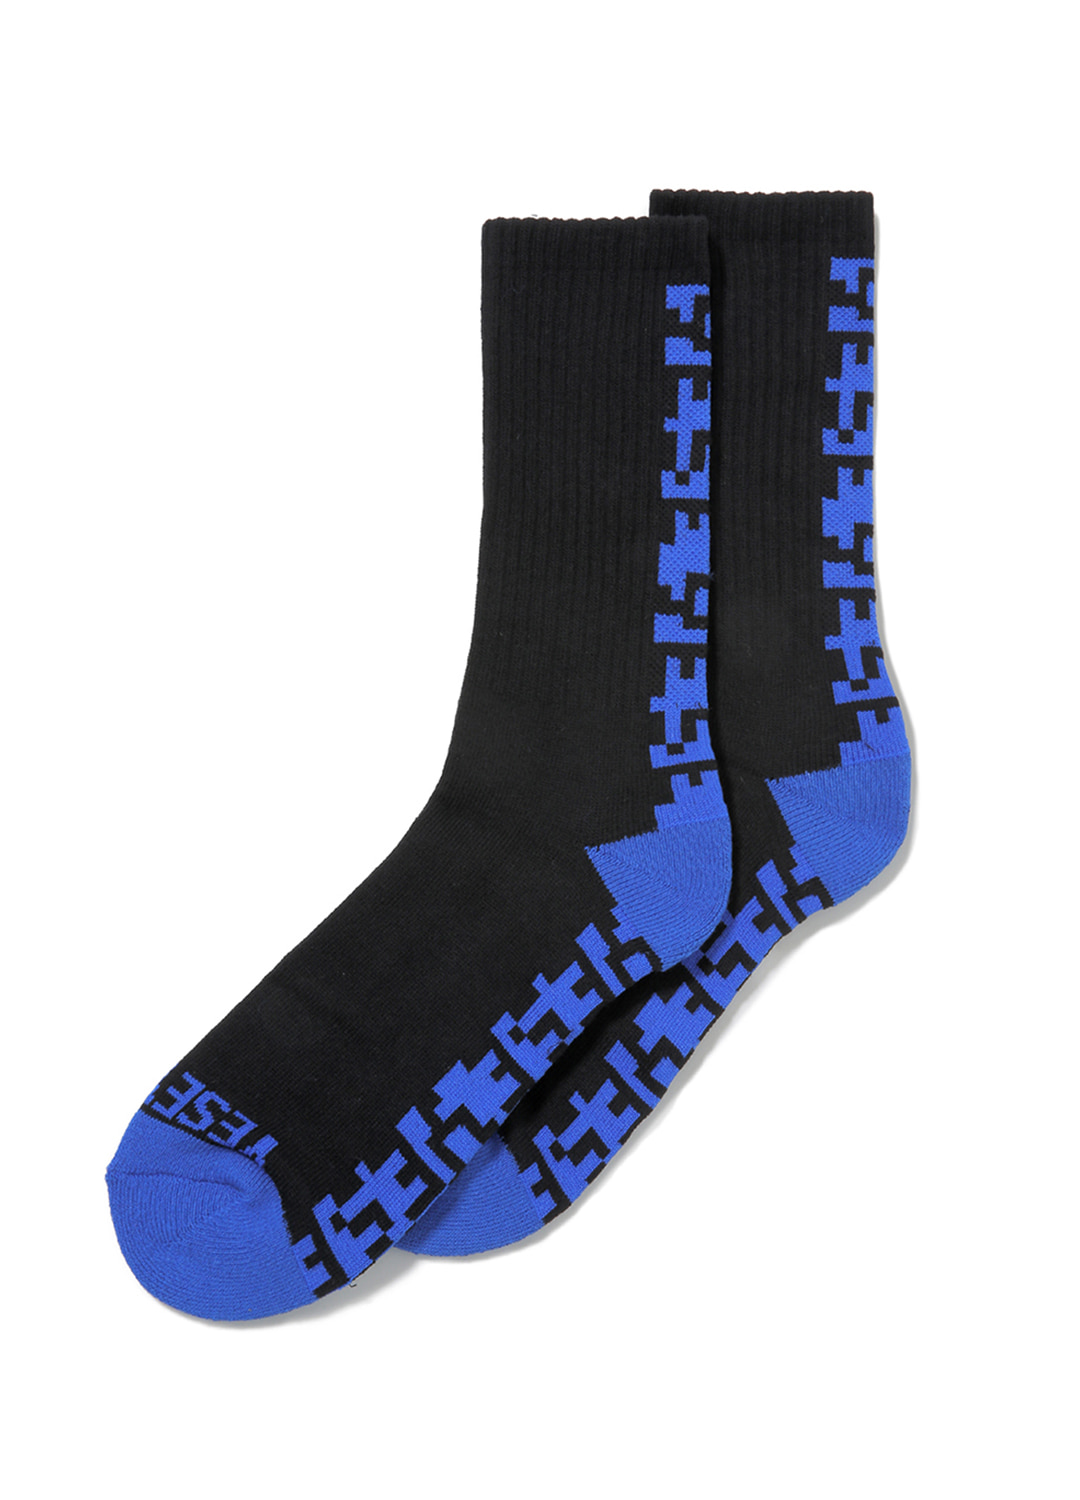 Y.E.S Line Socks Black